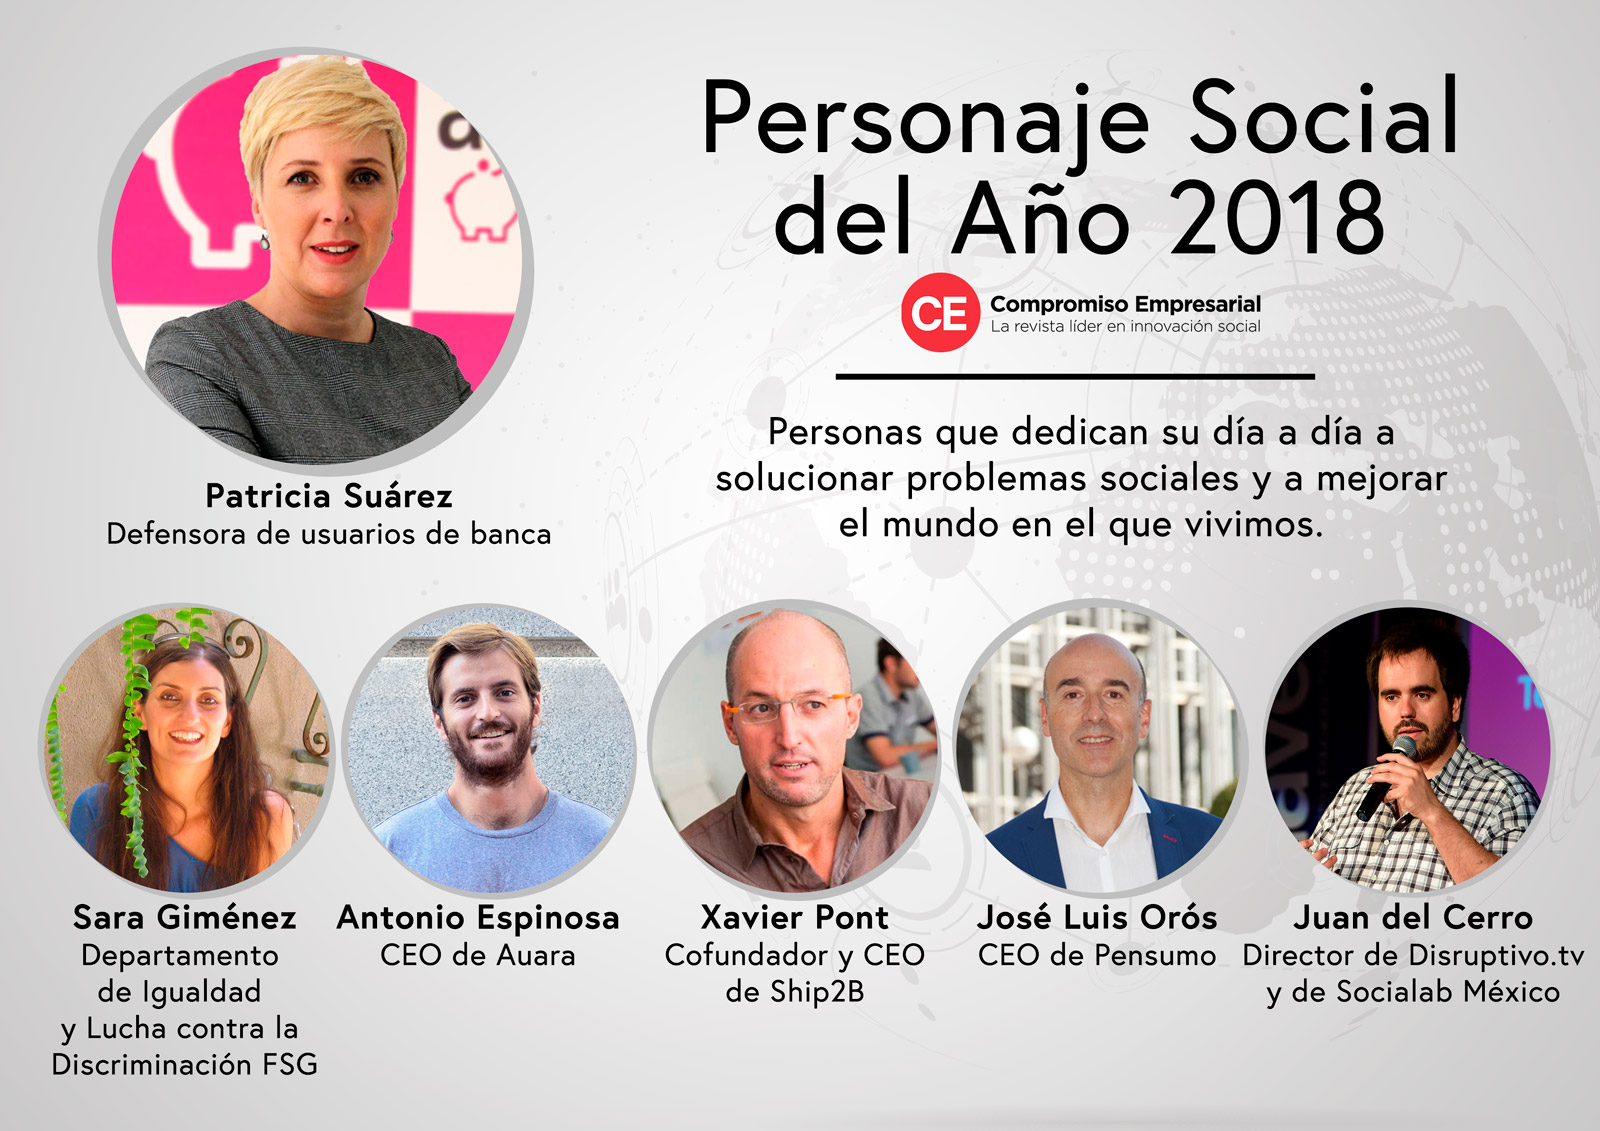 CEO of Pensumo finalist of the Awards 'Social Person of the Year 2018'